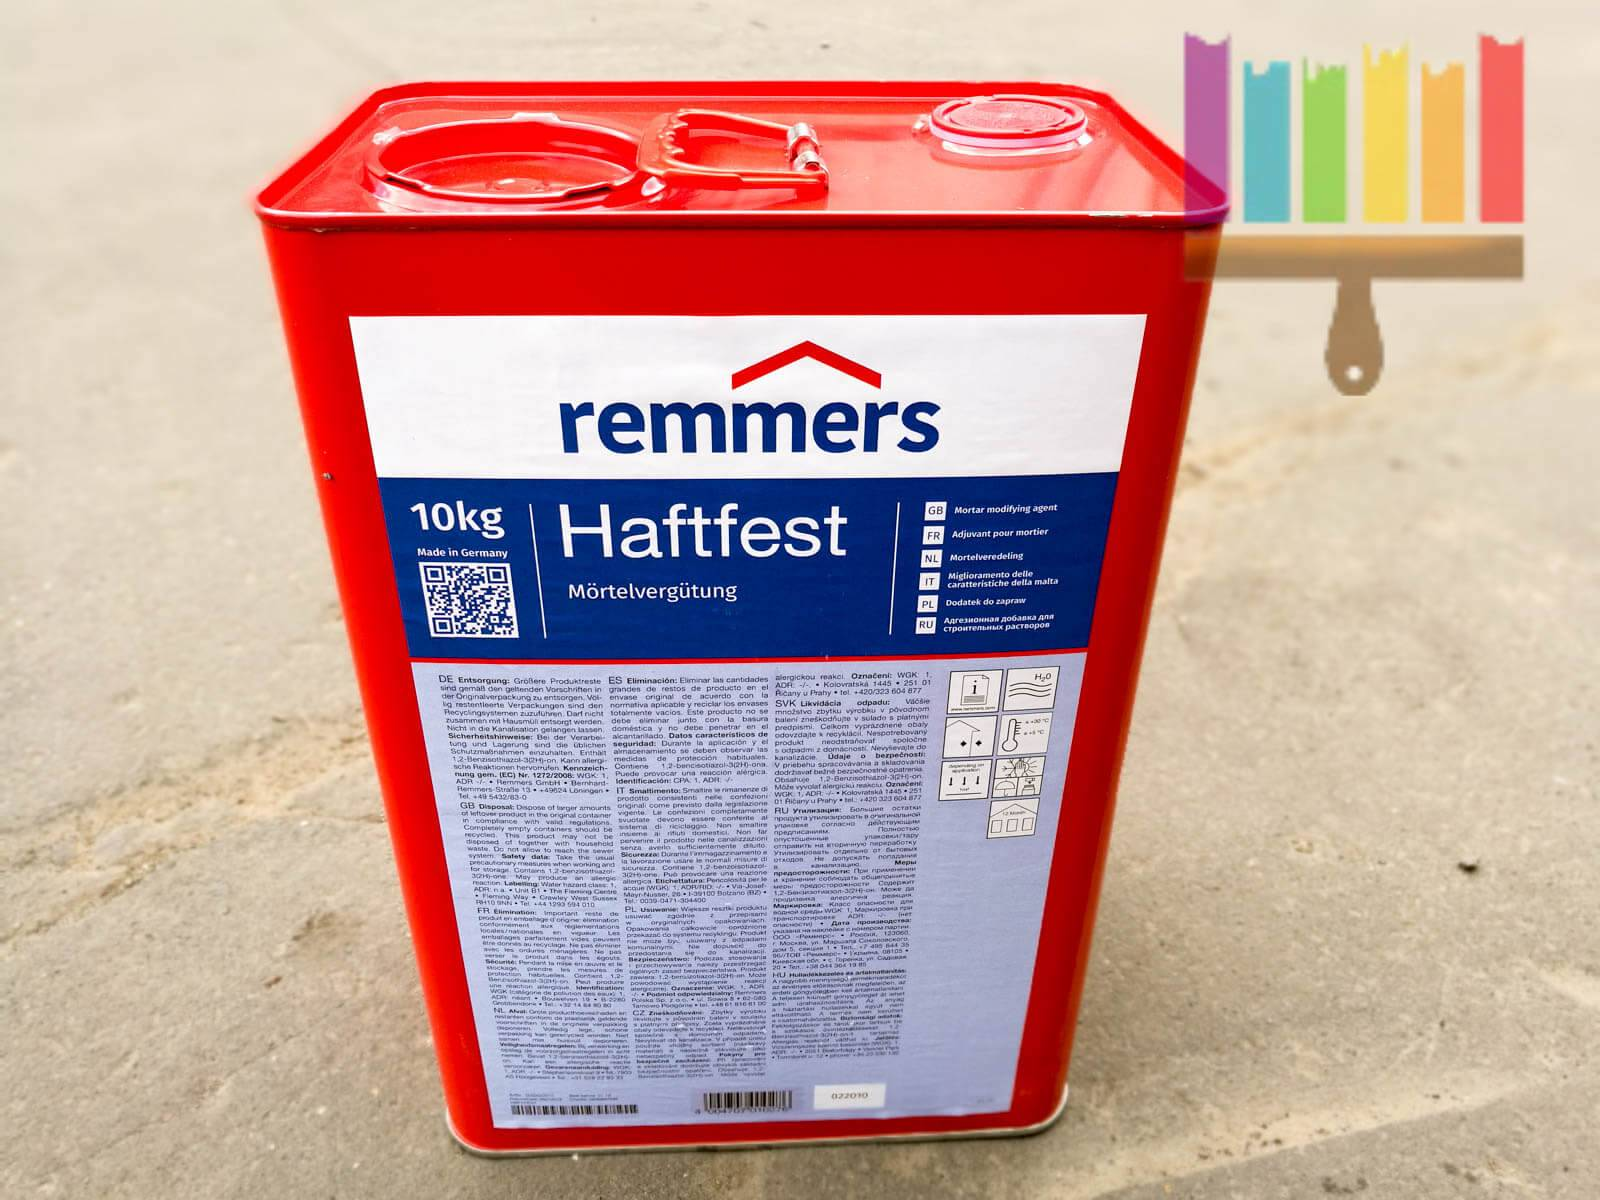 remmers haftfest. Фото N4